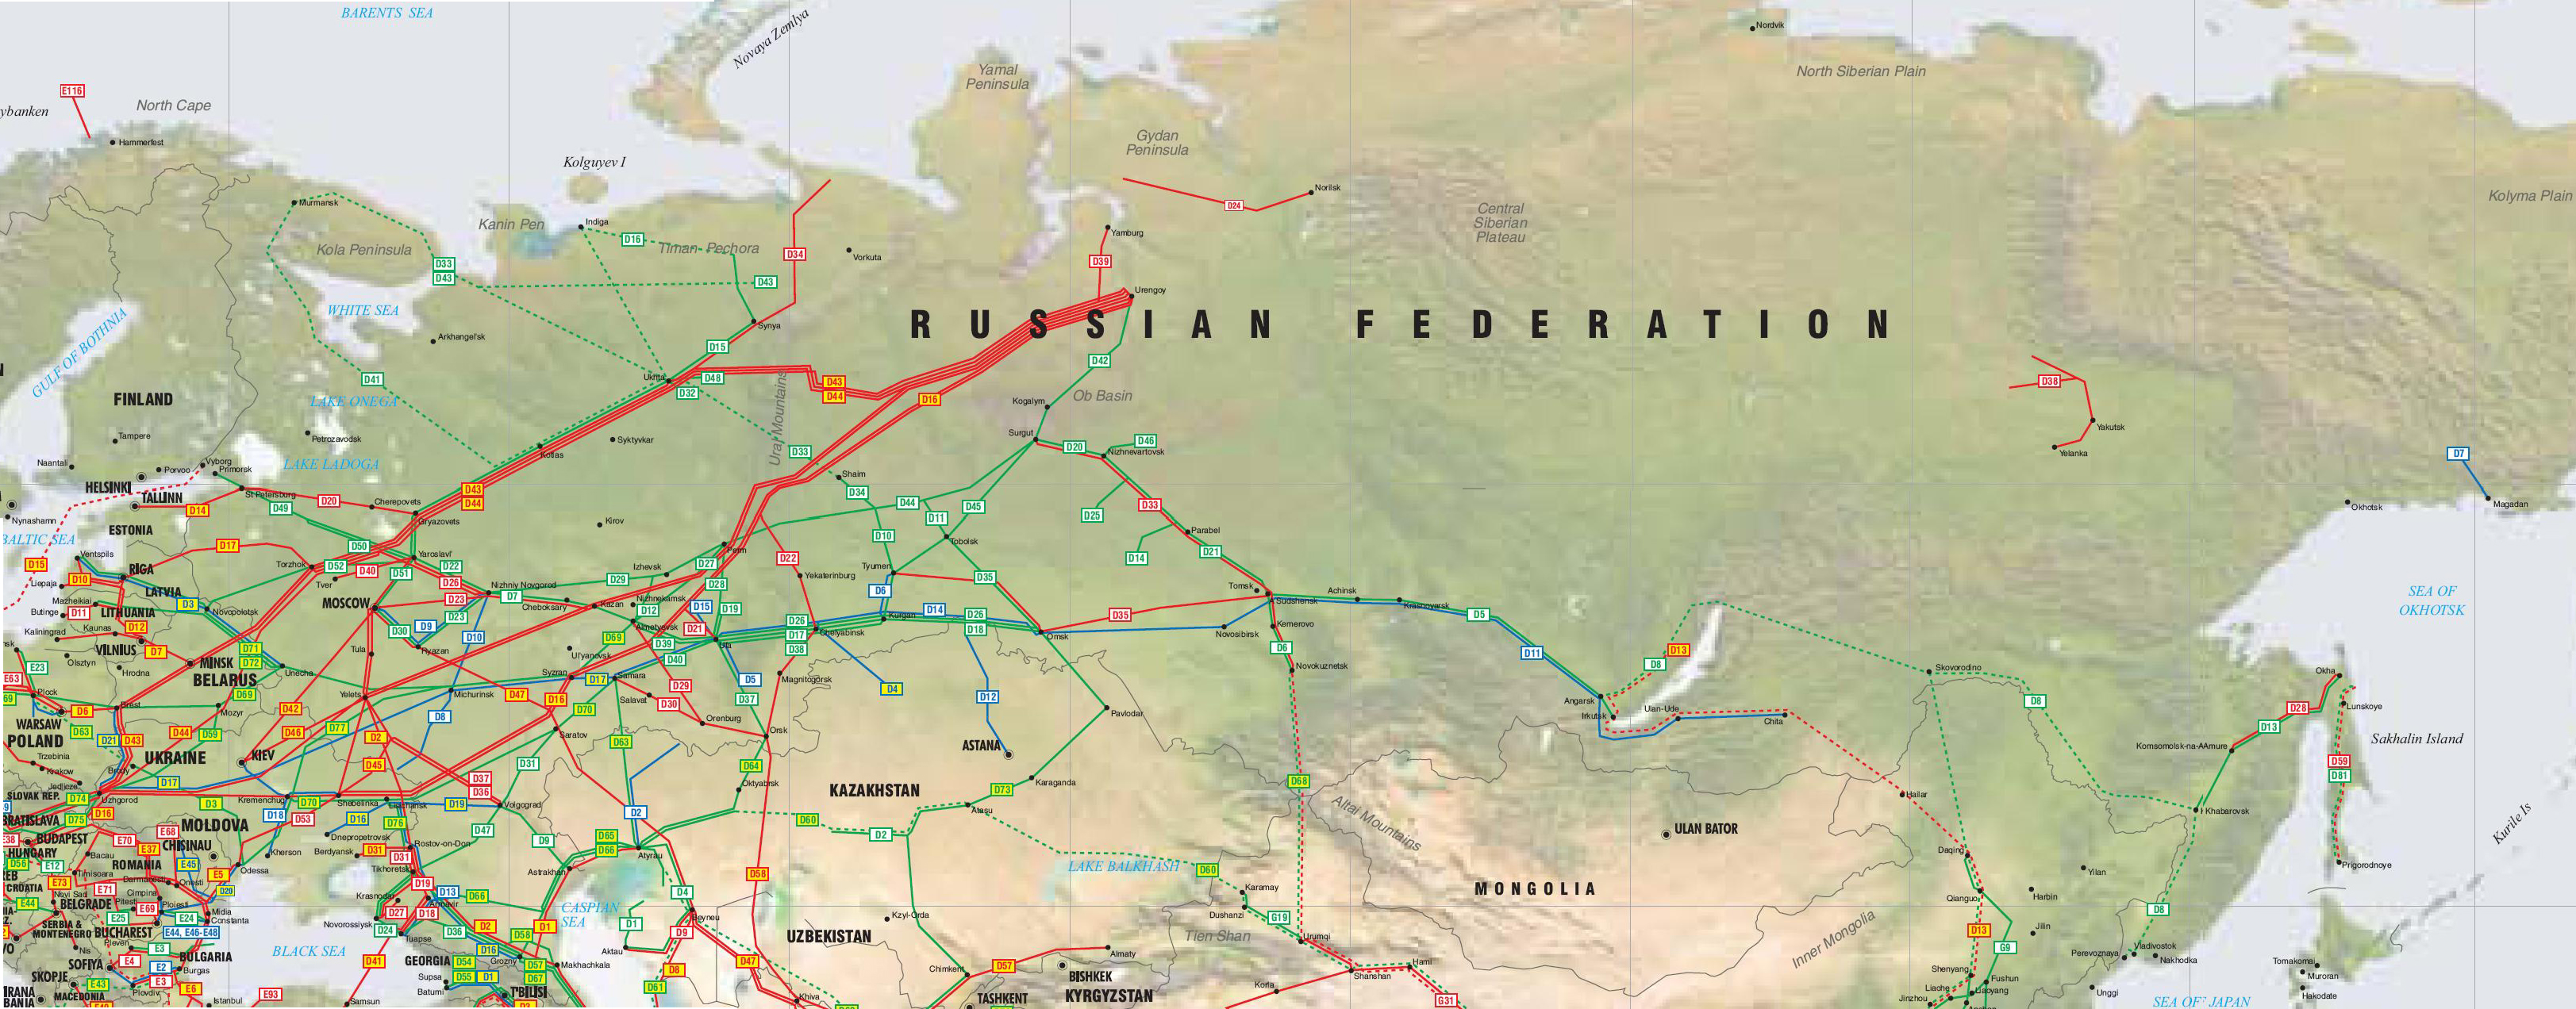 Russia - Former Soviet Union Pipelines map - Crude Oil (petroleum ...